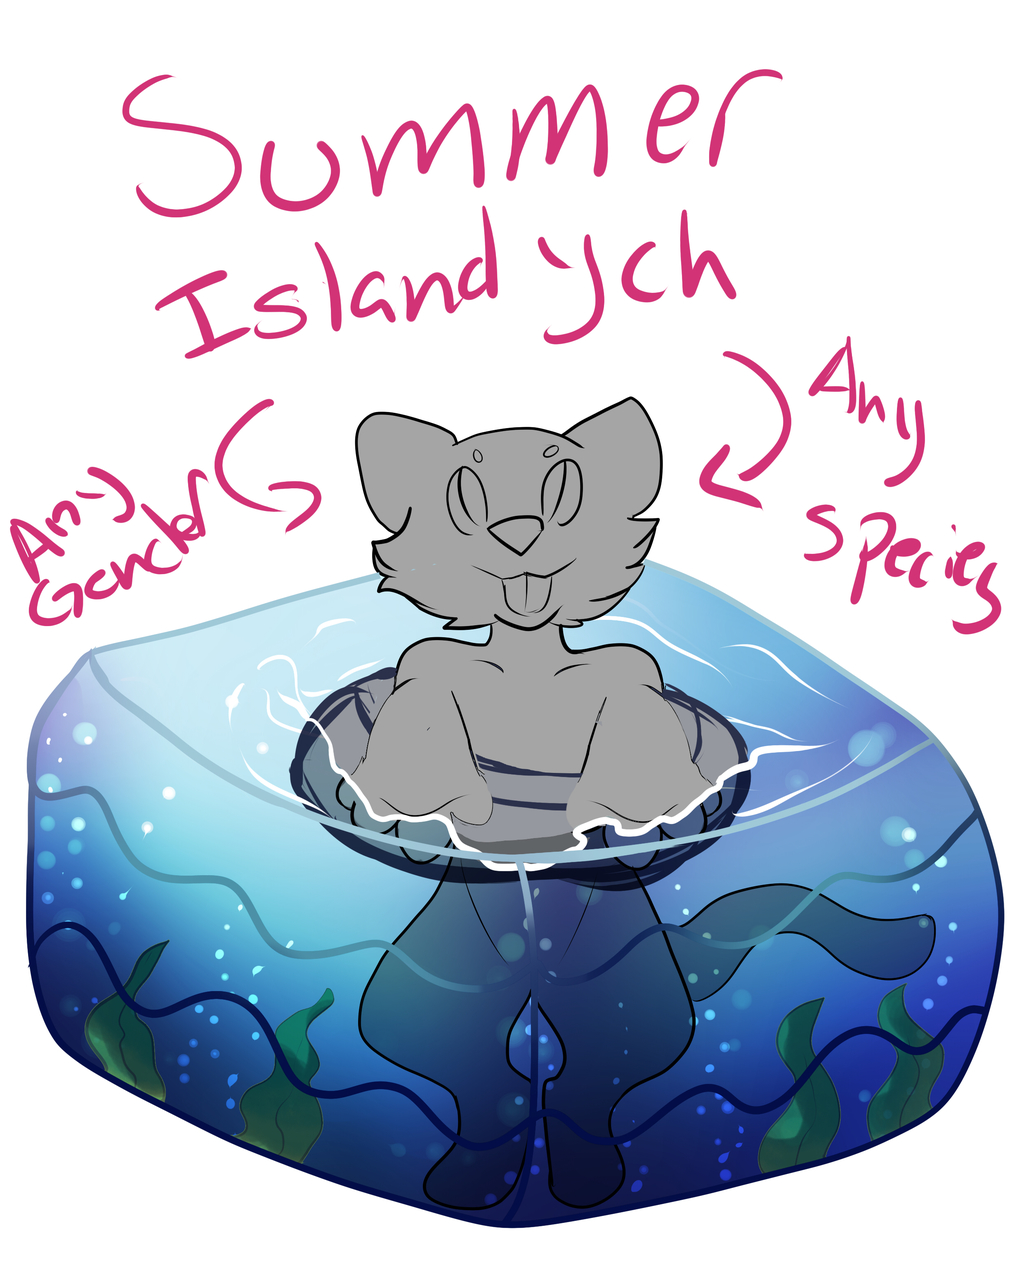 Most recent image: Summer Ych